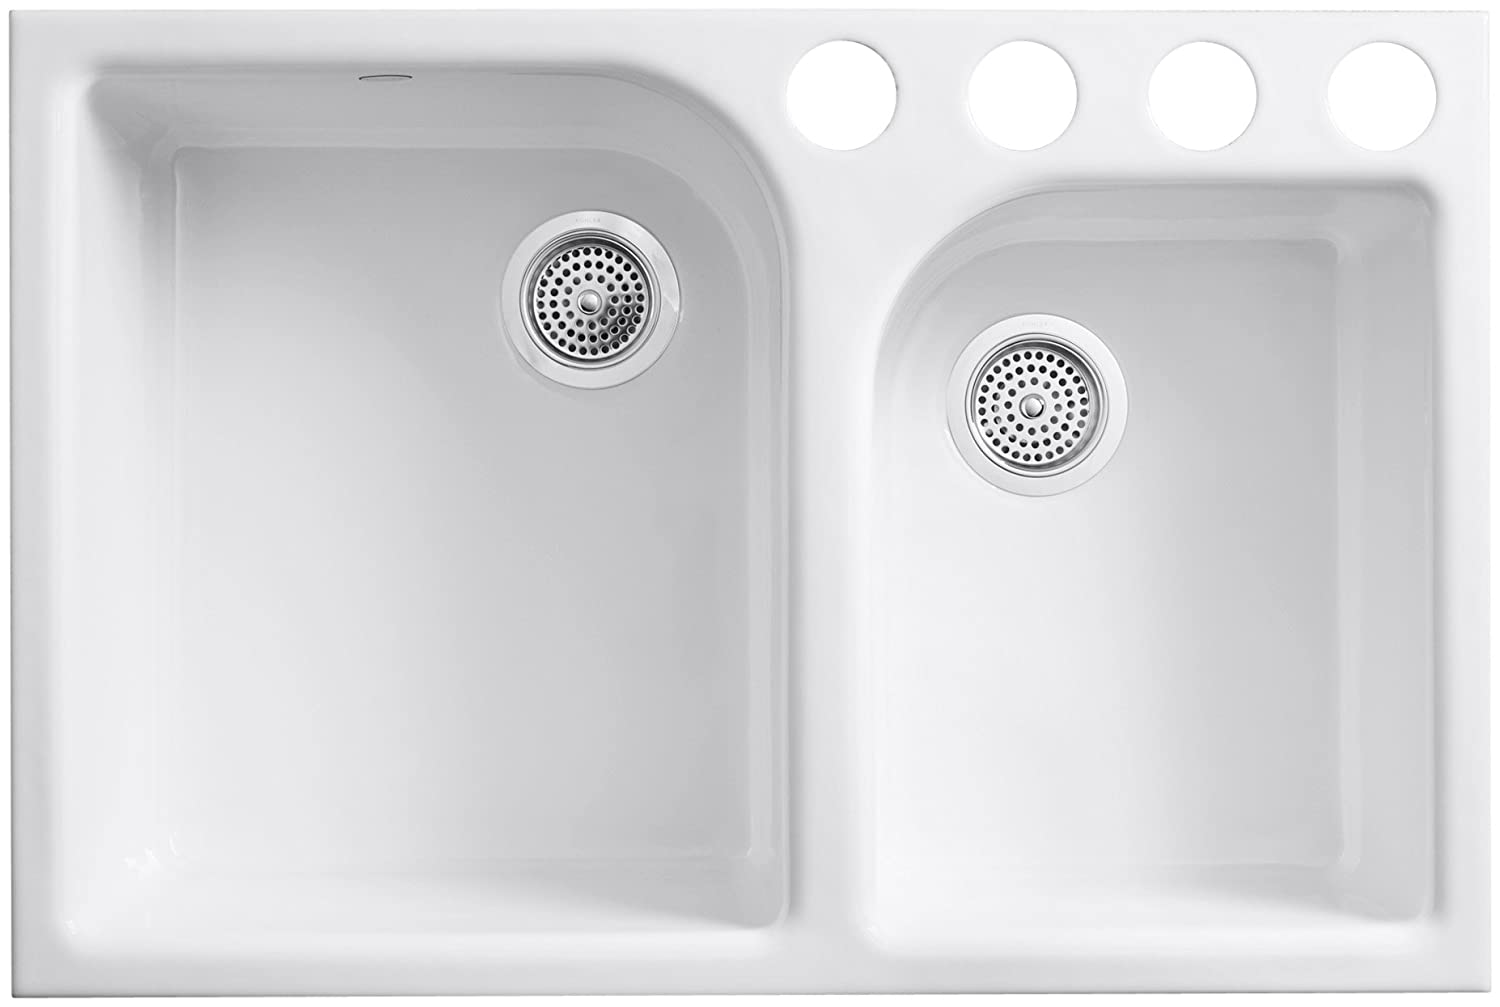 kohler k59314u0 executive chef kitchen sink white cast iron sink amazoncom - Cast Iron Kitchen Sinks